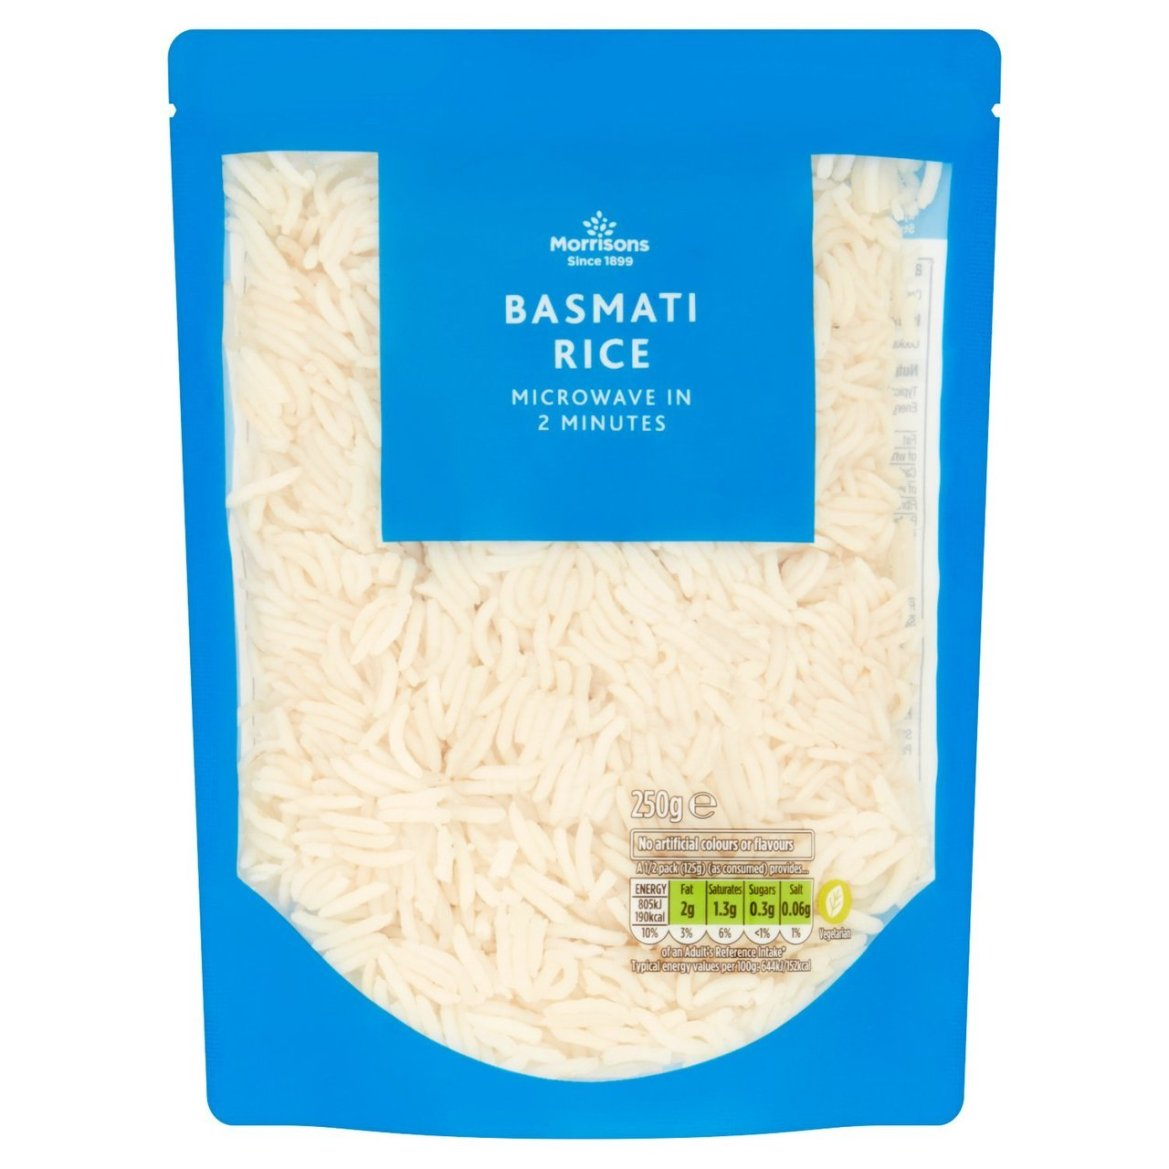 ...when you can get a pack of Morrisons basmati rice for just 65p